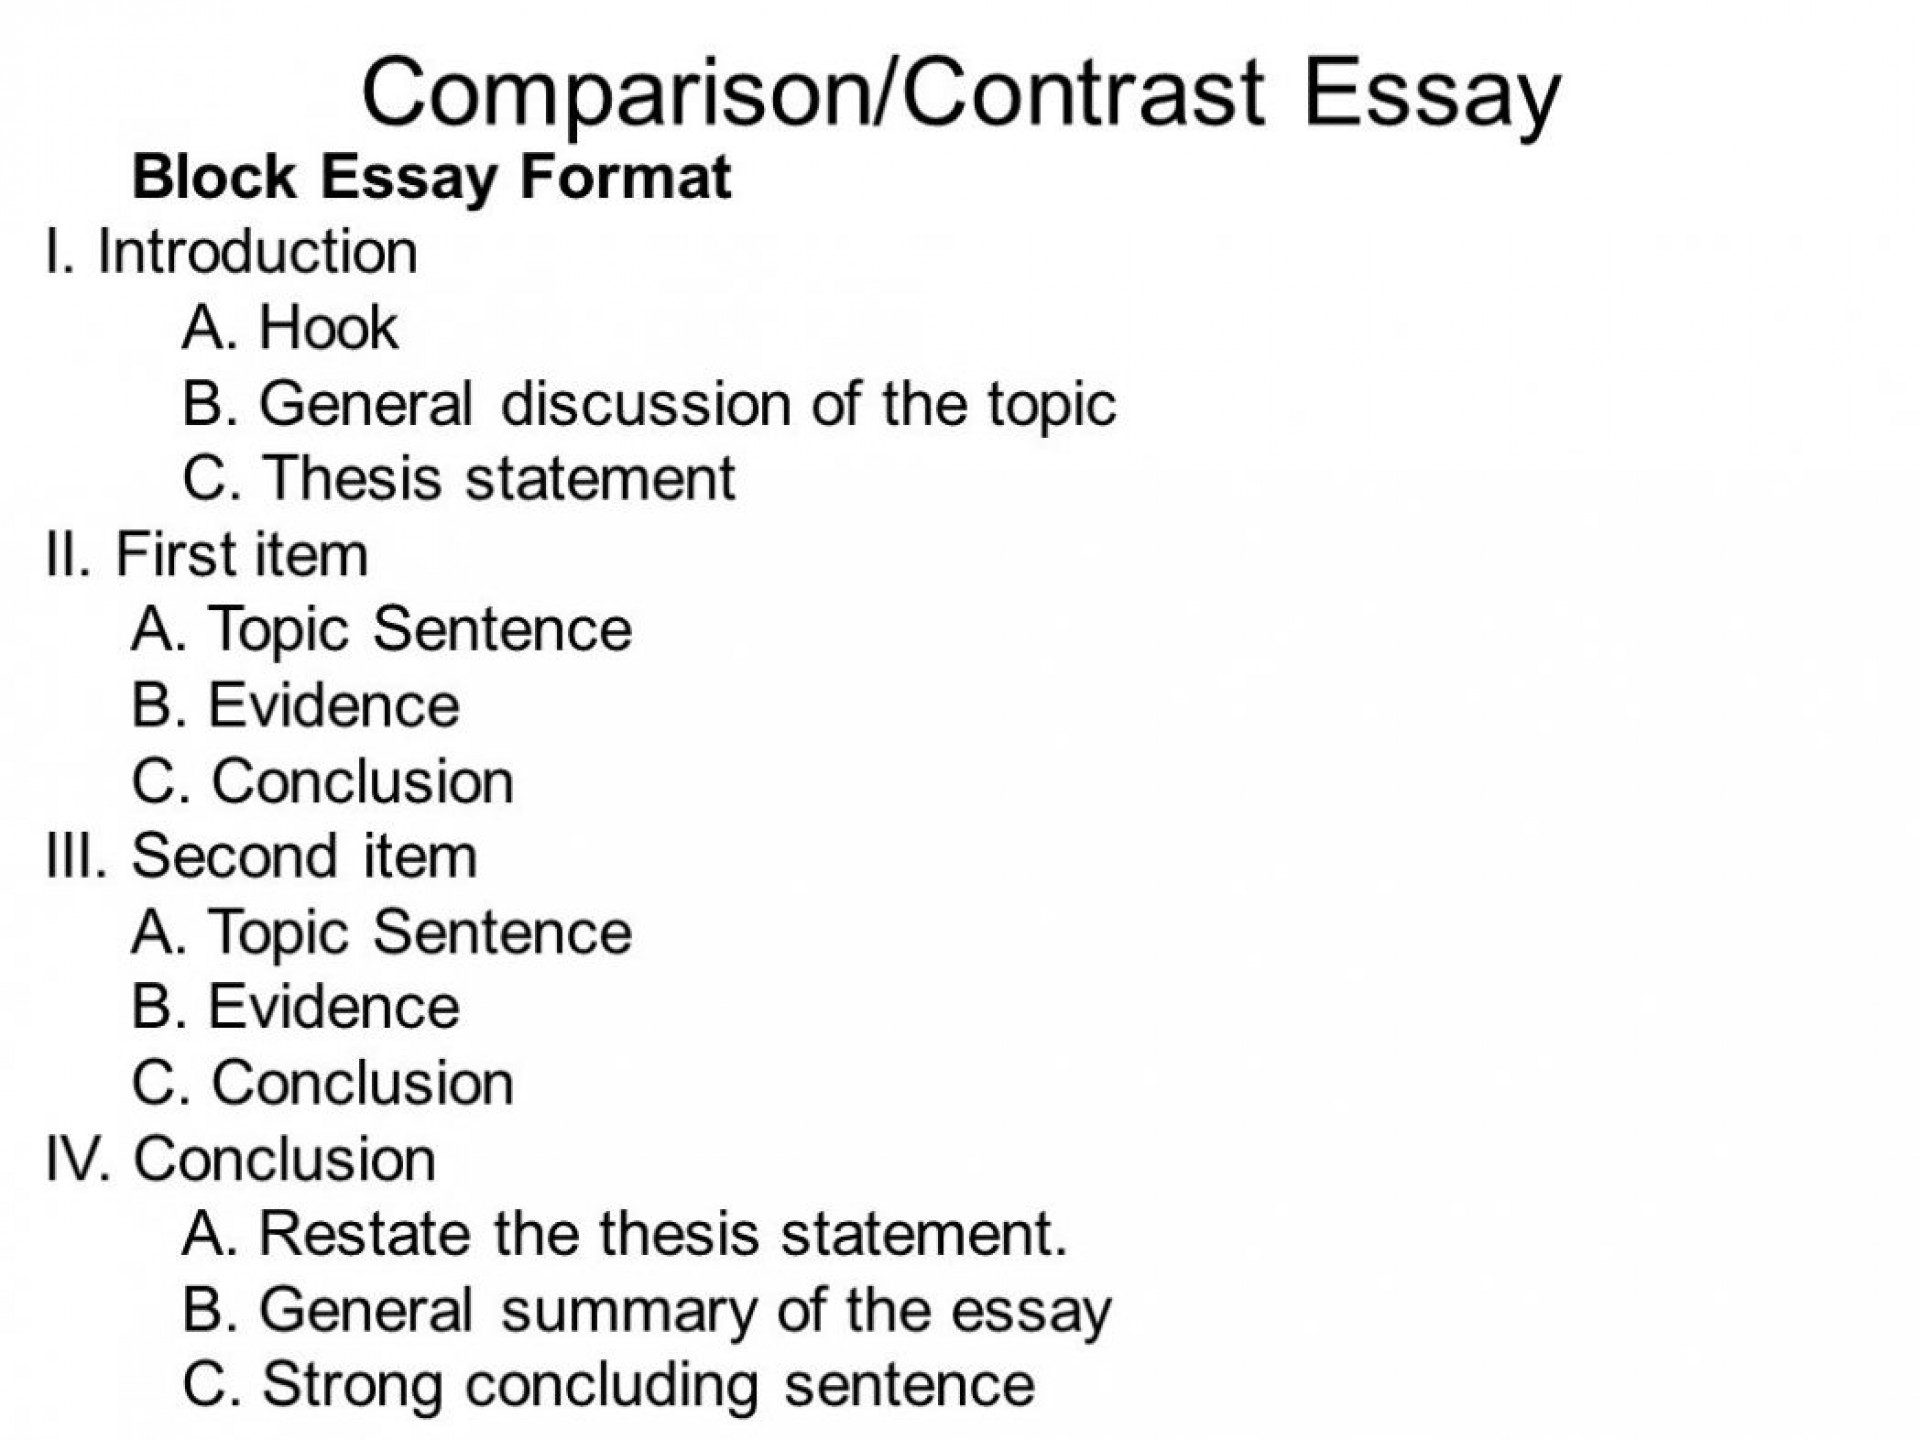 004 Essay Example Hook For Essays Compare And Contrast Format Sli Good Argumentative Hooks Examples 1048x786 Stupendous Structure Ppt Outline 1920